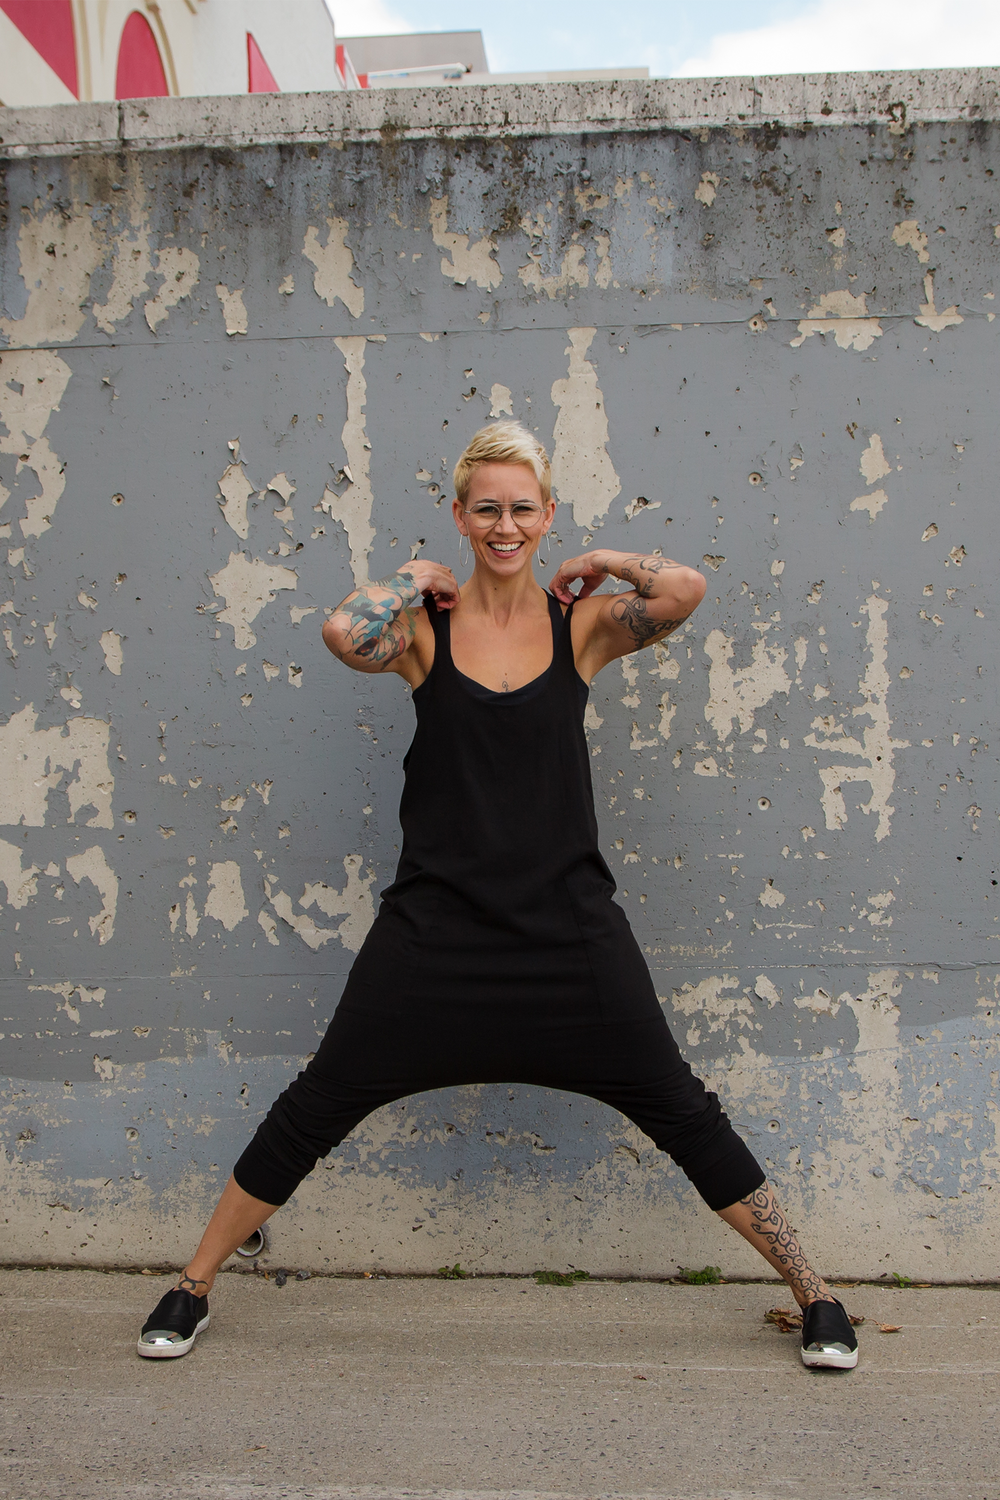 Dallas Delahunt - I believe that a regular yoga practice has the power to teach us how to be more aware of our experiences, be connected to the moments, and simply be. When we practice remaining present to each moment on our yoga mats, it shows us a way of being more present in our day to day lives. It reminds us to be kind, patient, and loving to ourselves, and in turn, to those around us. I work to infuse all these elements of my yoga practice into every aspect of my life from parenting to washing my dishes.My approach to teaching yoga is simple, accessible, and pragmatic. I focus on creating quiet spaces for the mind to calm down amidst the movement, work, and stillness of the body. My classes are powerful and gentle, a beautiful pairing to help you leave feeling nourished, supported, and loved.